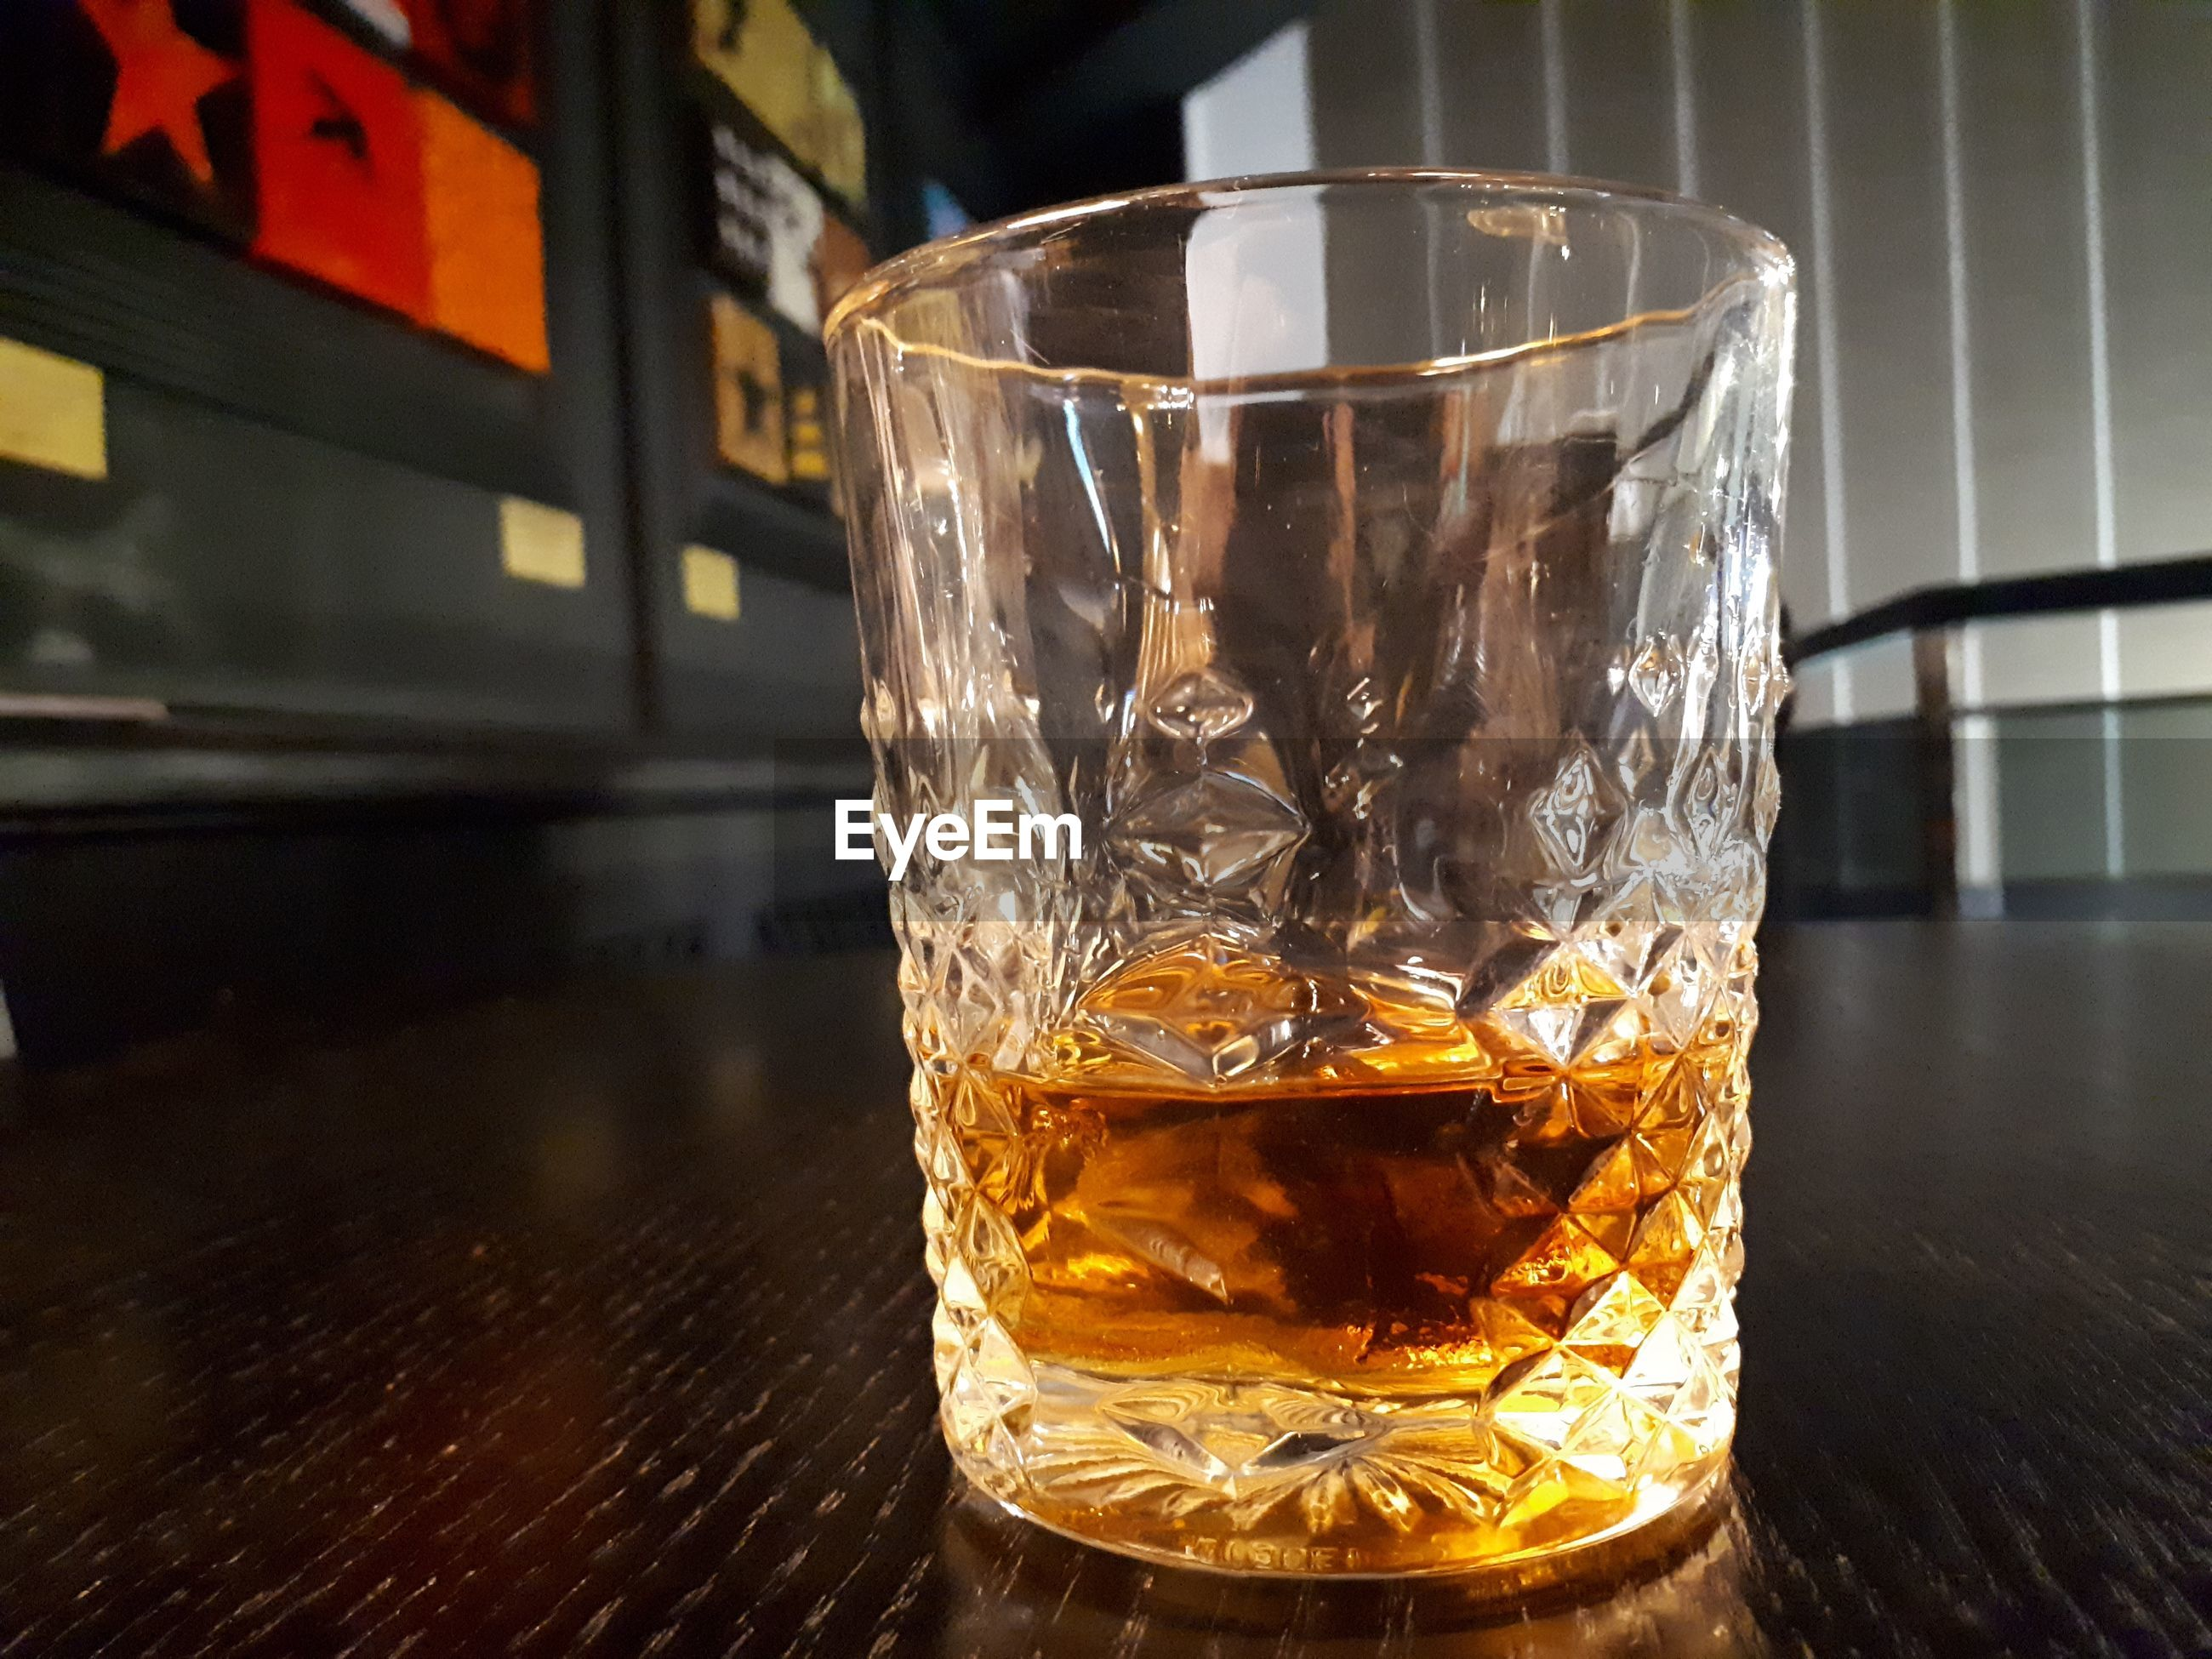 Close-up of whiskey glass on table